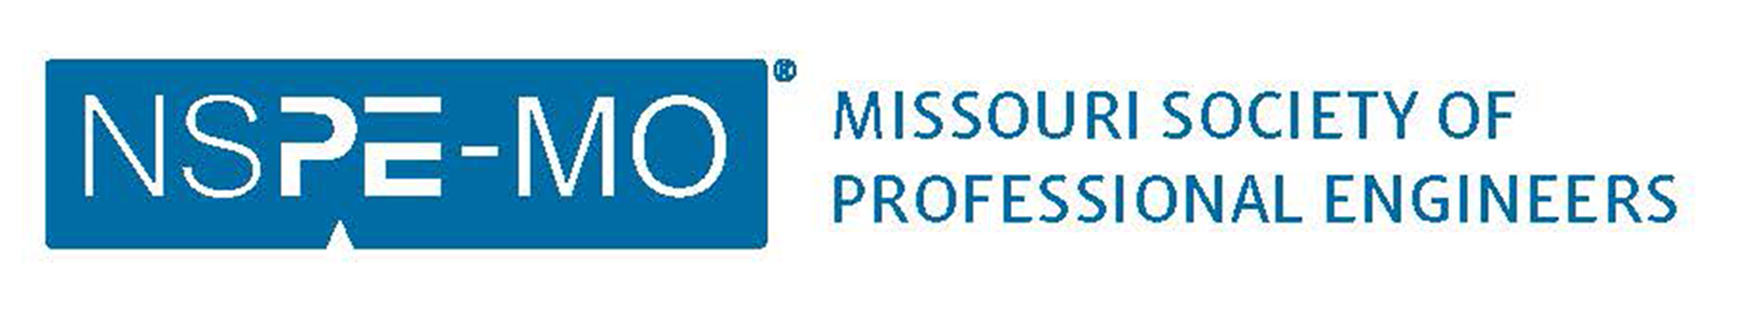 Missouri Society of Professional Engineers - QBS